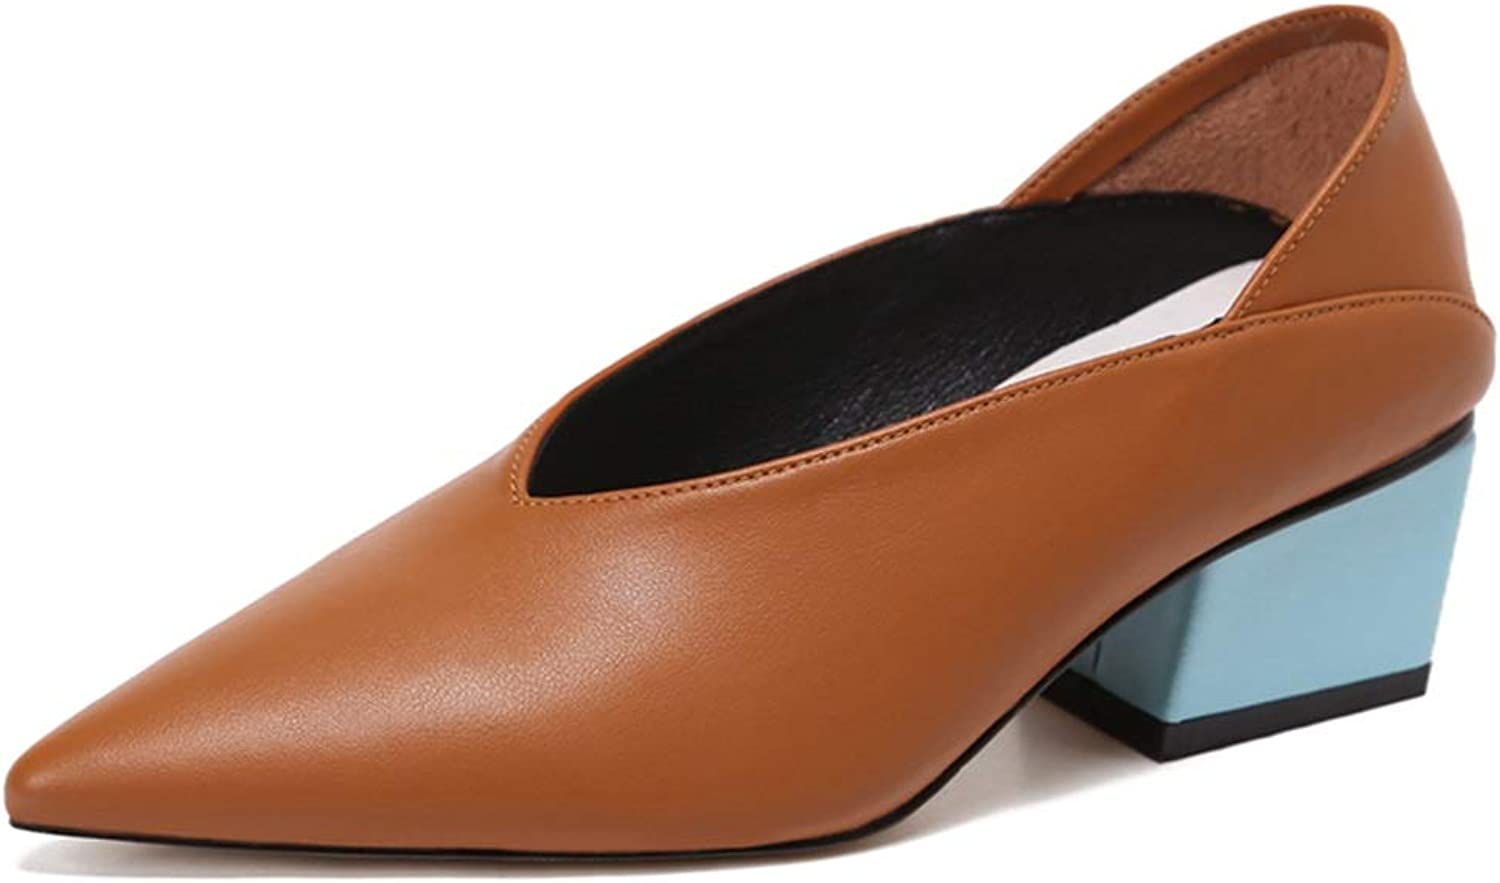 Women's shoes Wild Rough with Single shoes Pointed Shallow Mouth Single shoes with V shoes Witch shoes Mid Heel Sandals for Women A shoes with Two Use Slippers (color   Brown, Size   37 US6.5-7)